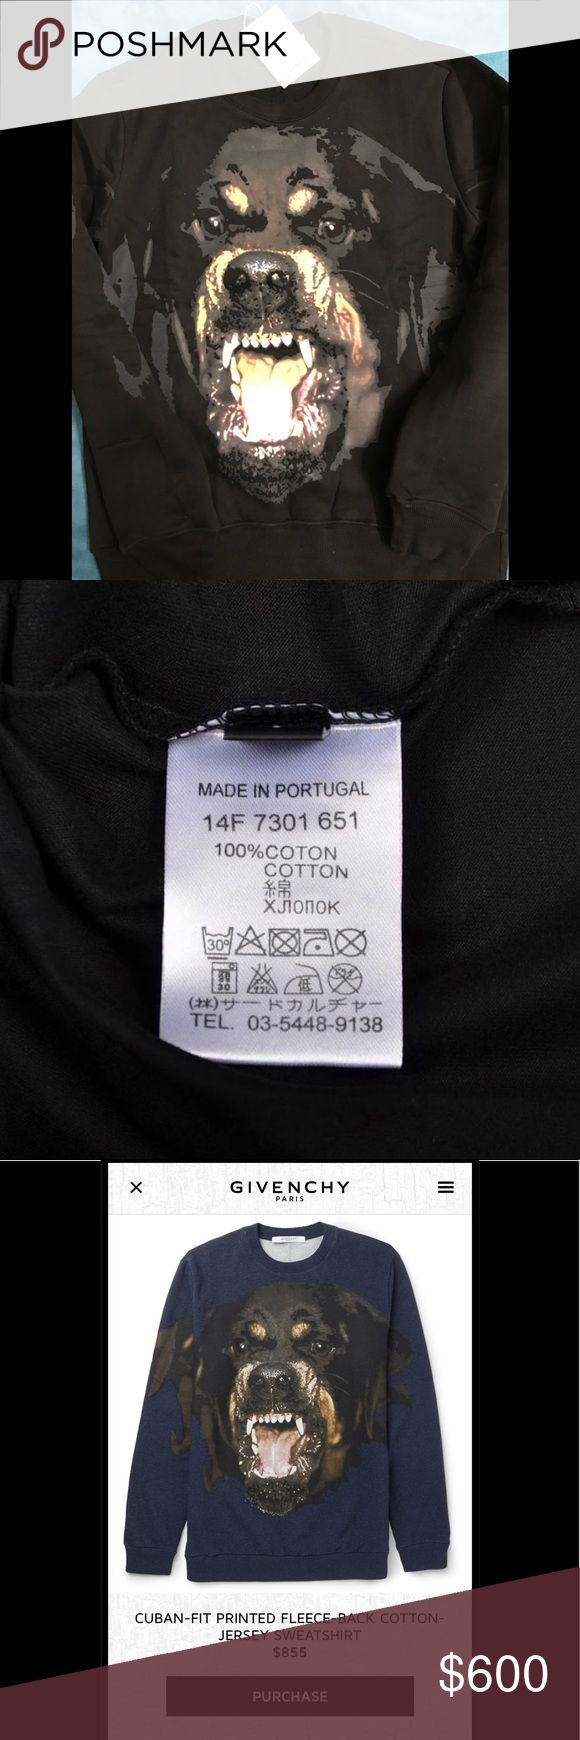 Givenchy Rottweiler sweater size L Cuban fit Brand new sweater for sale for those Givenchy lovers. Accepting offers and will be happy to provide more pictures if serious inquiry . Has tags Givenchy Sweaters